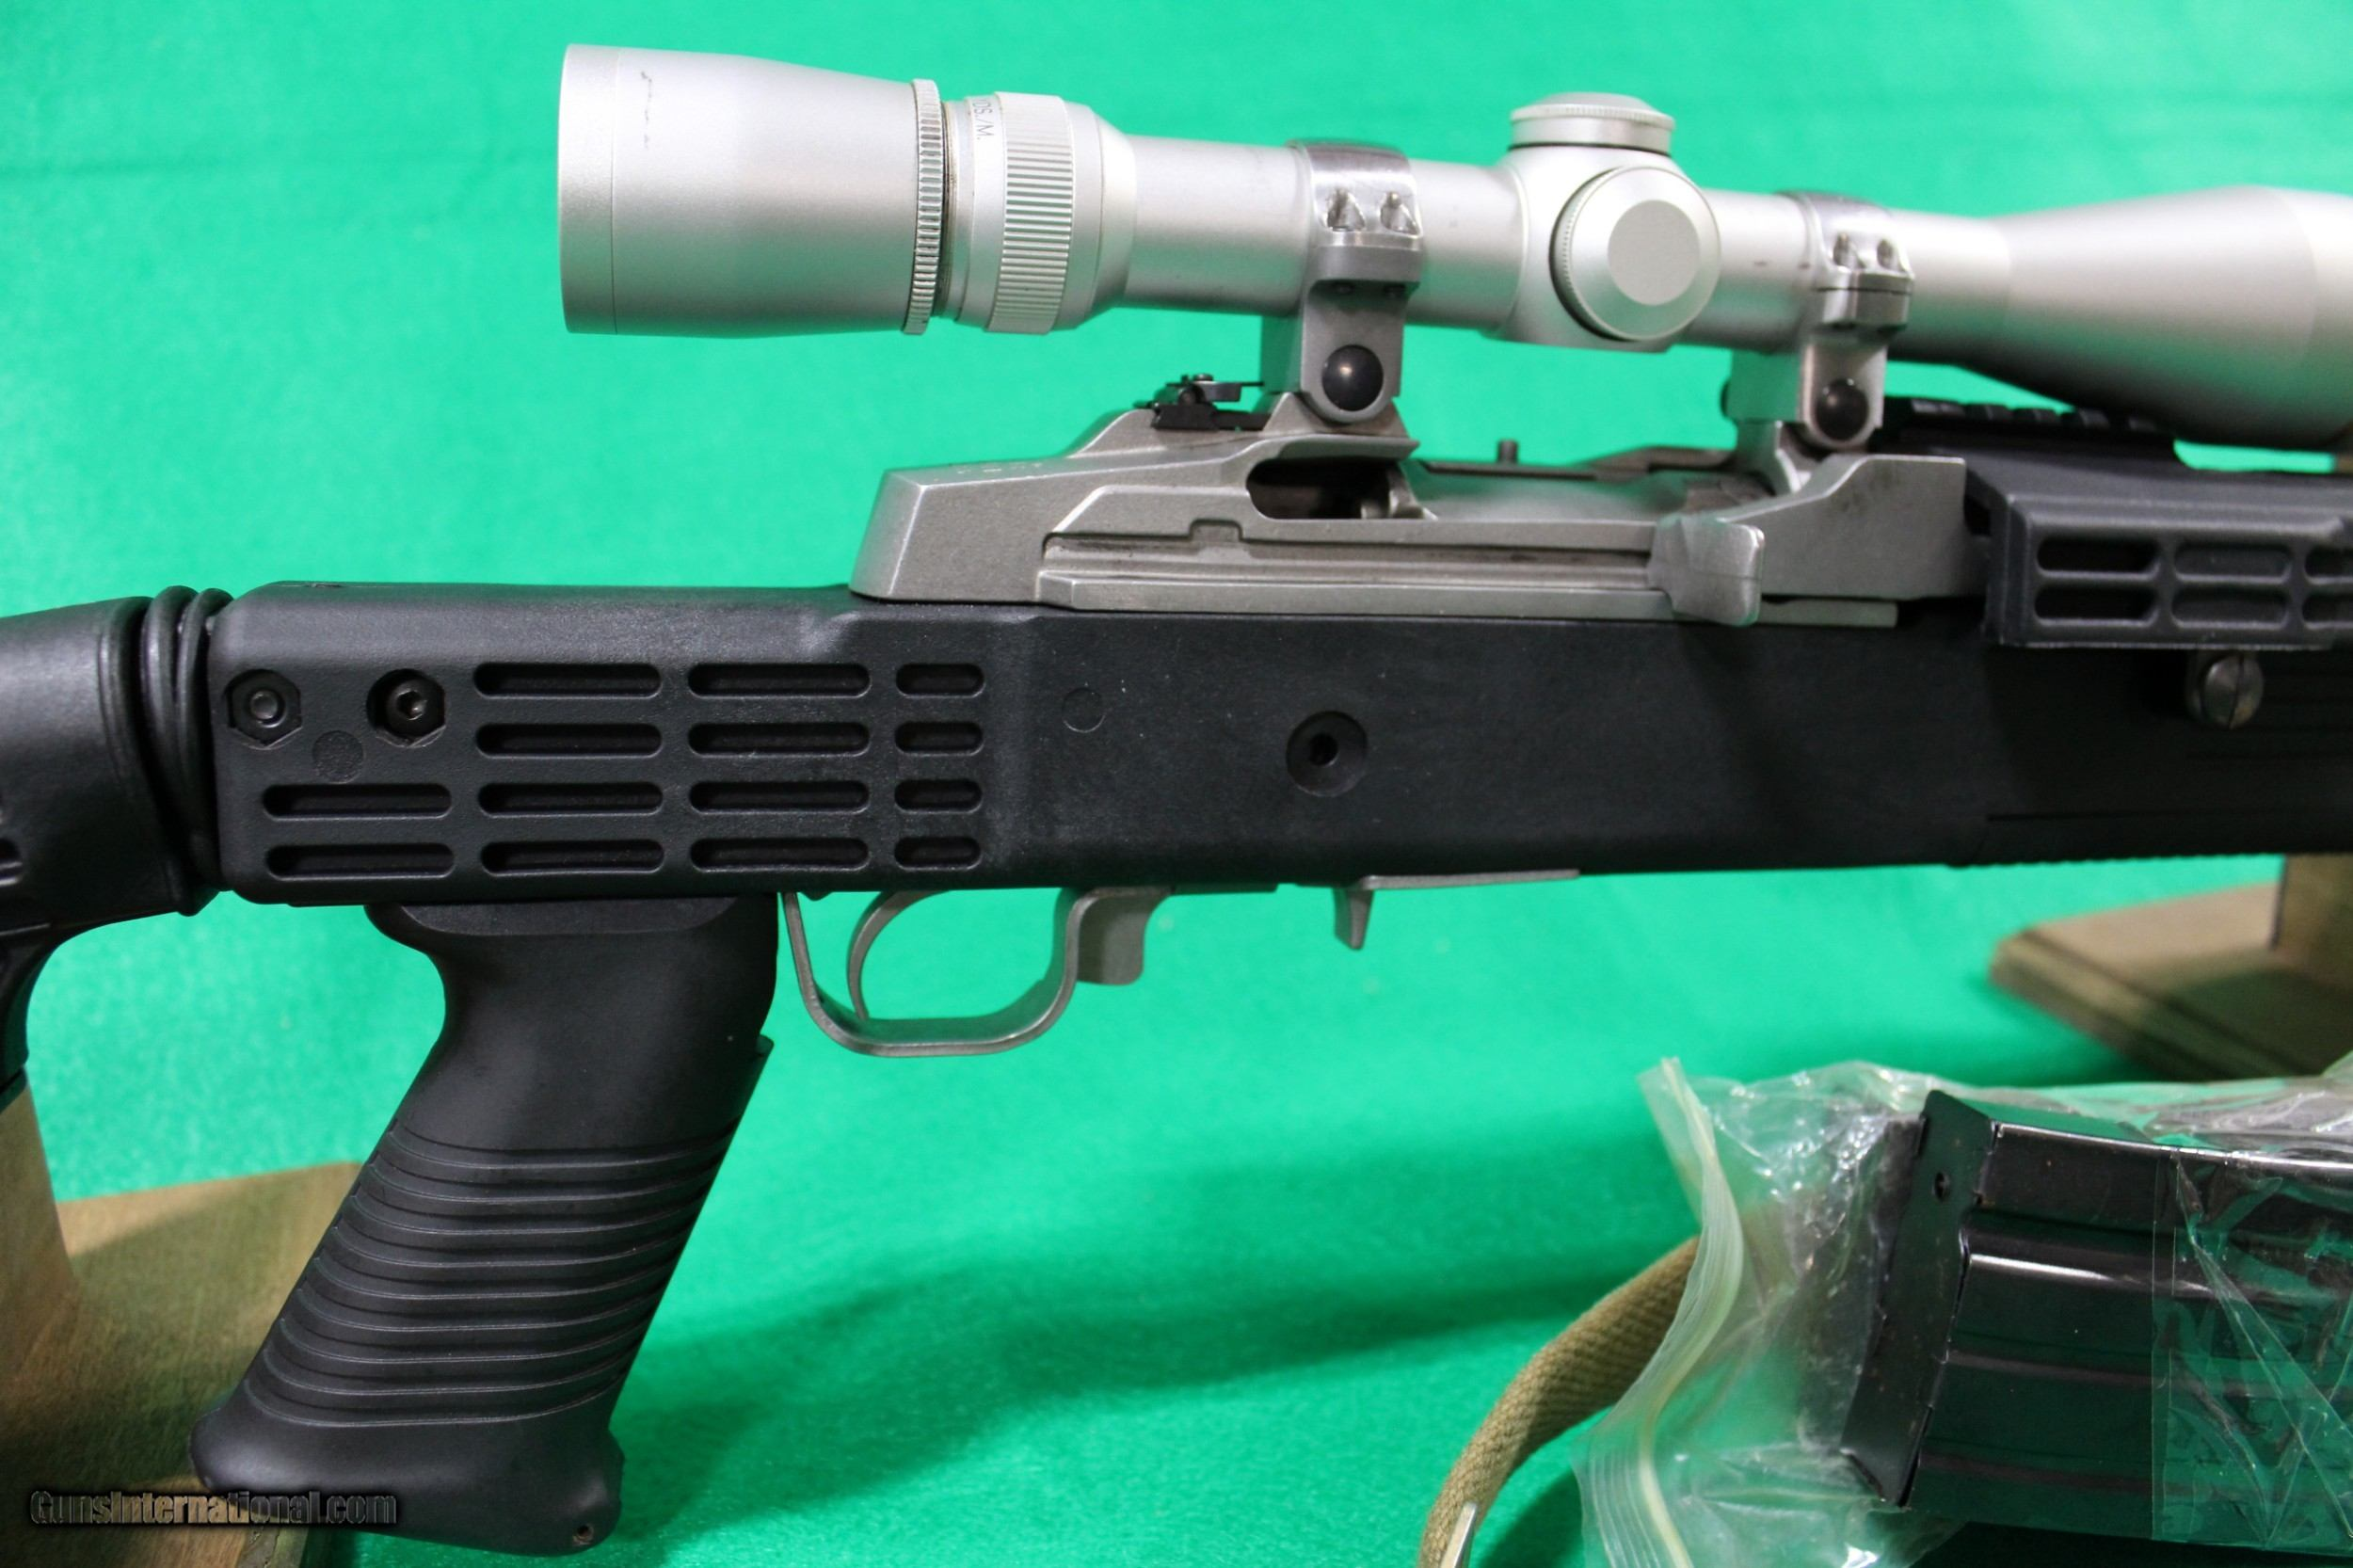 Used Ruger Mini-14 with Leupold Scope in Collapsible Tactical Stock